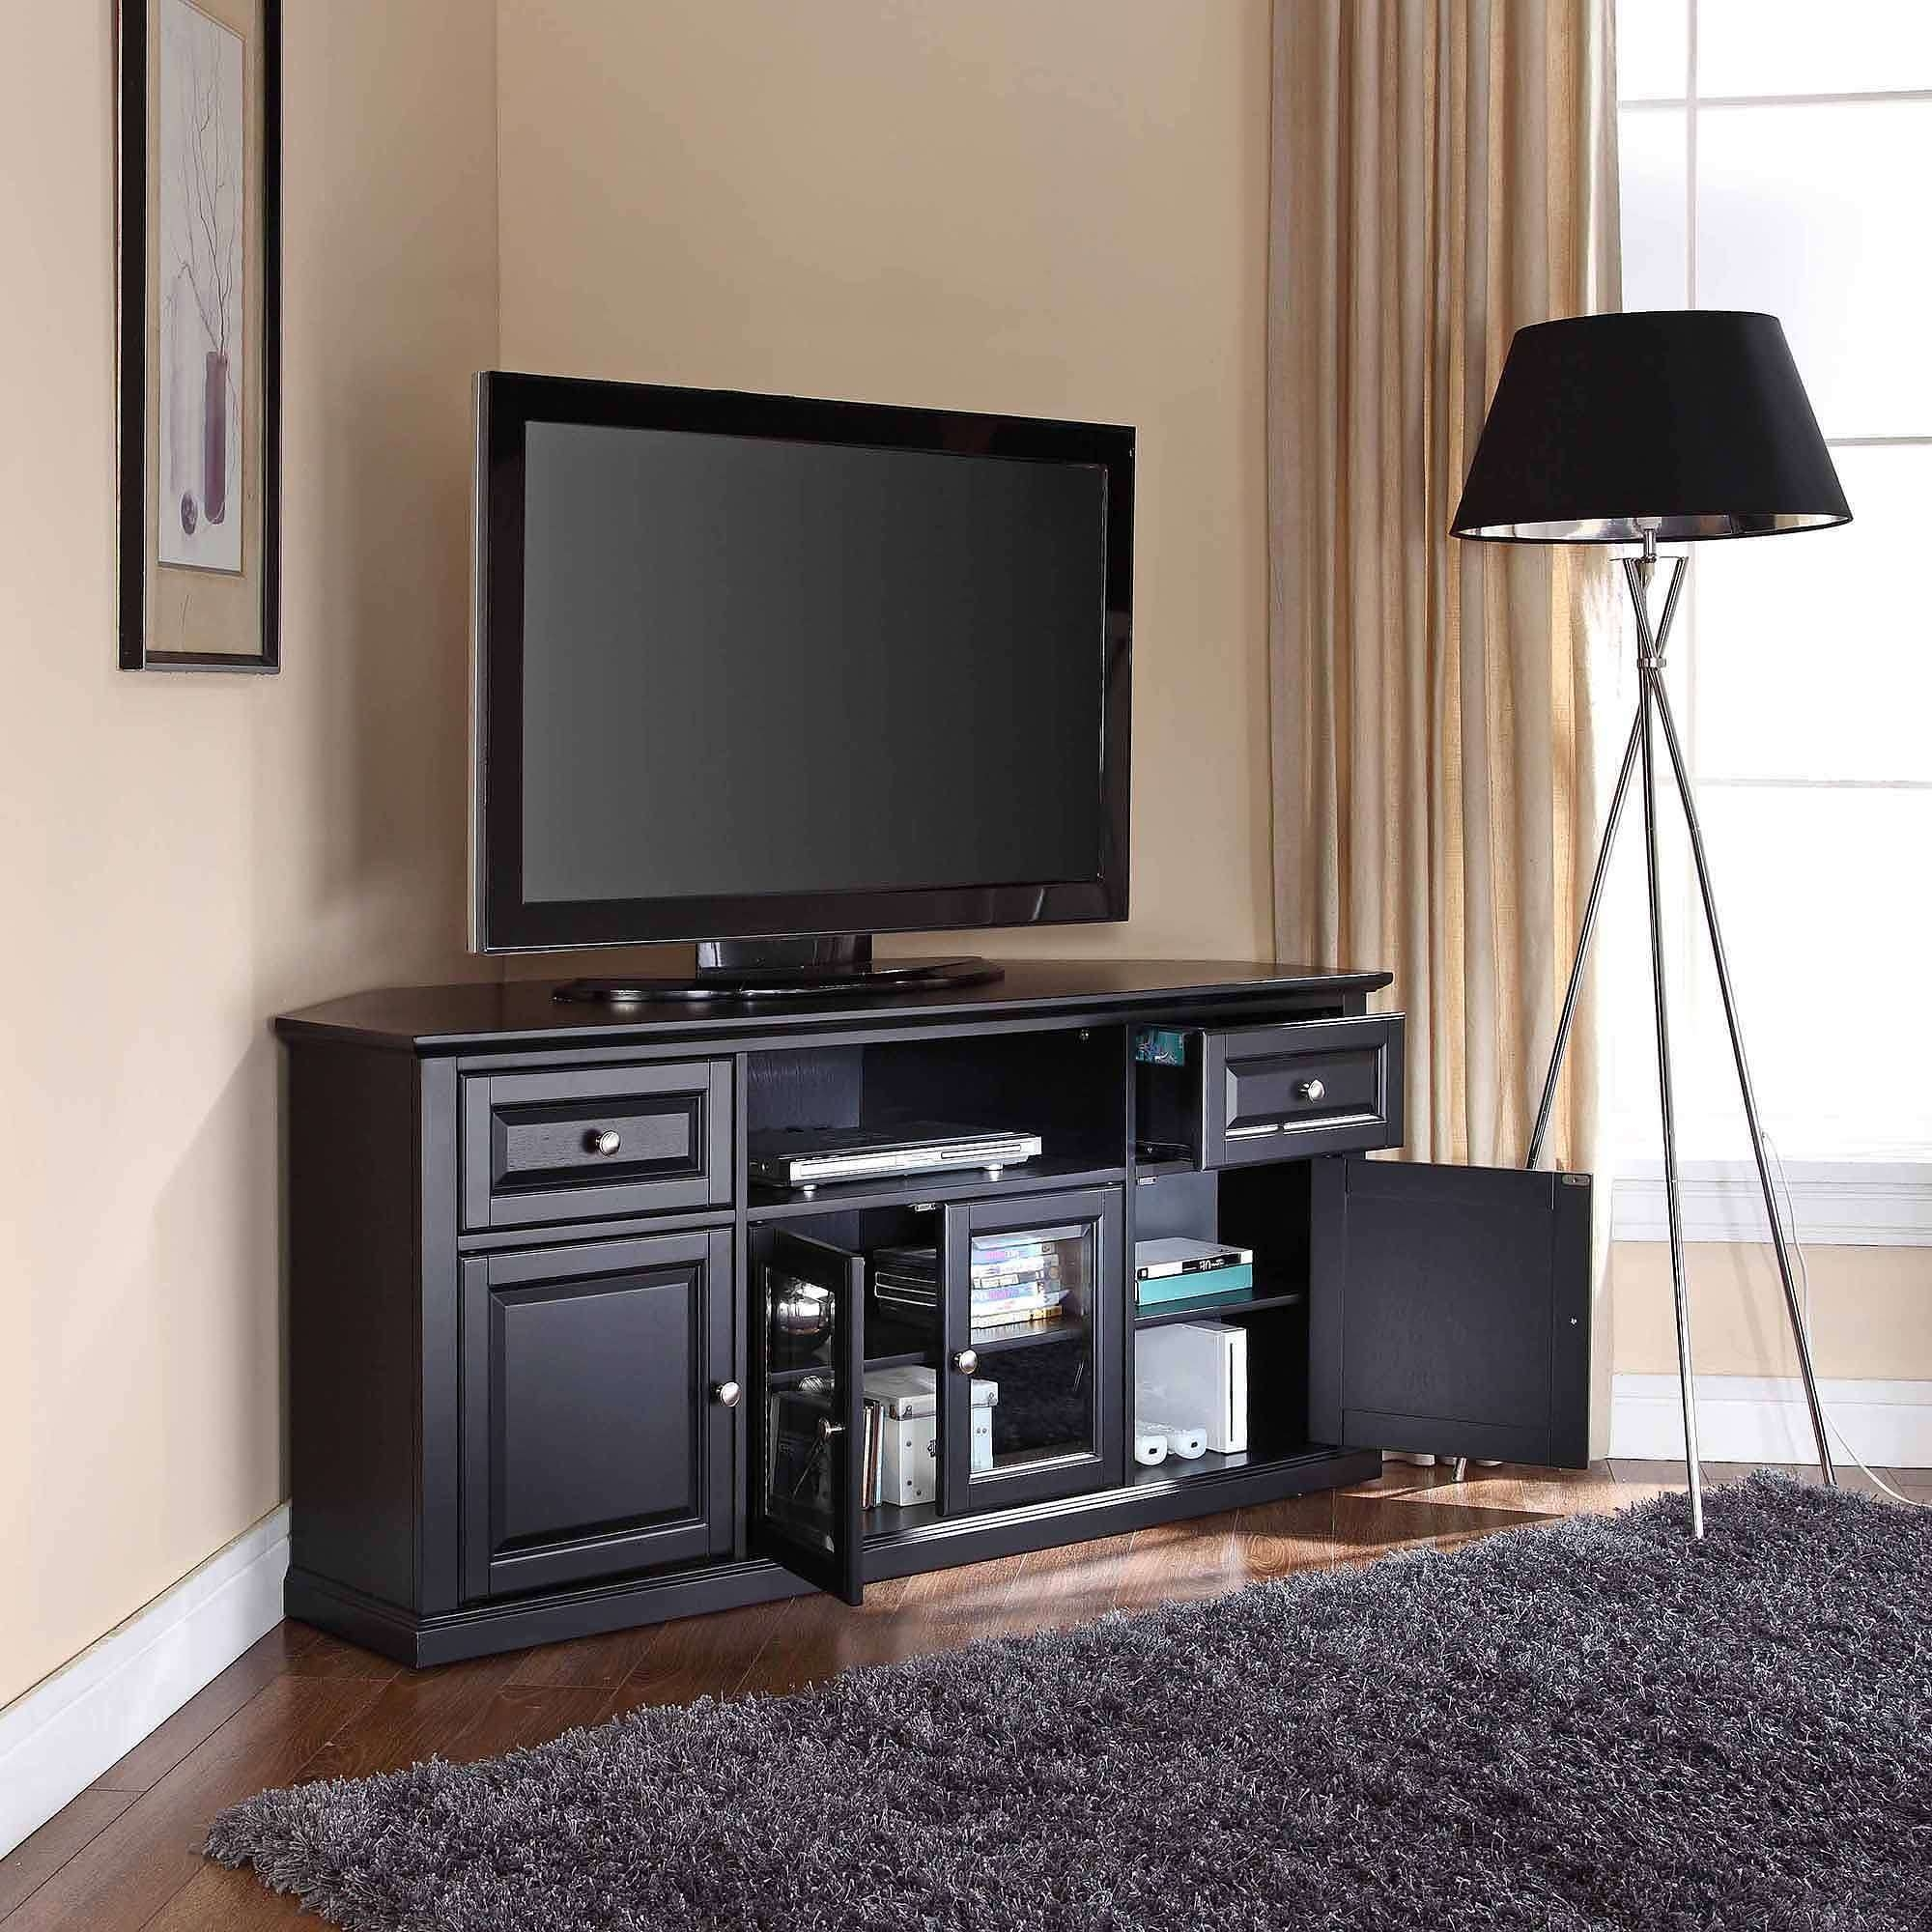 Storage Cabinets Ideas : Corner Tv Cabinet Black Choosing The Regarding Triangular Tv Stands (View 11 of 15)